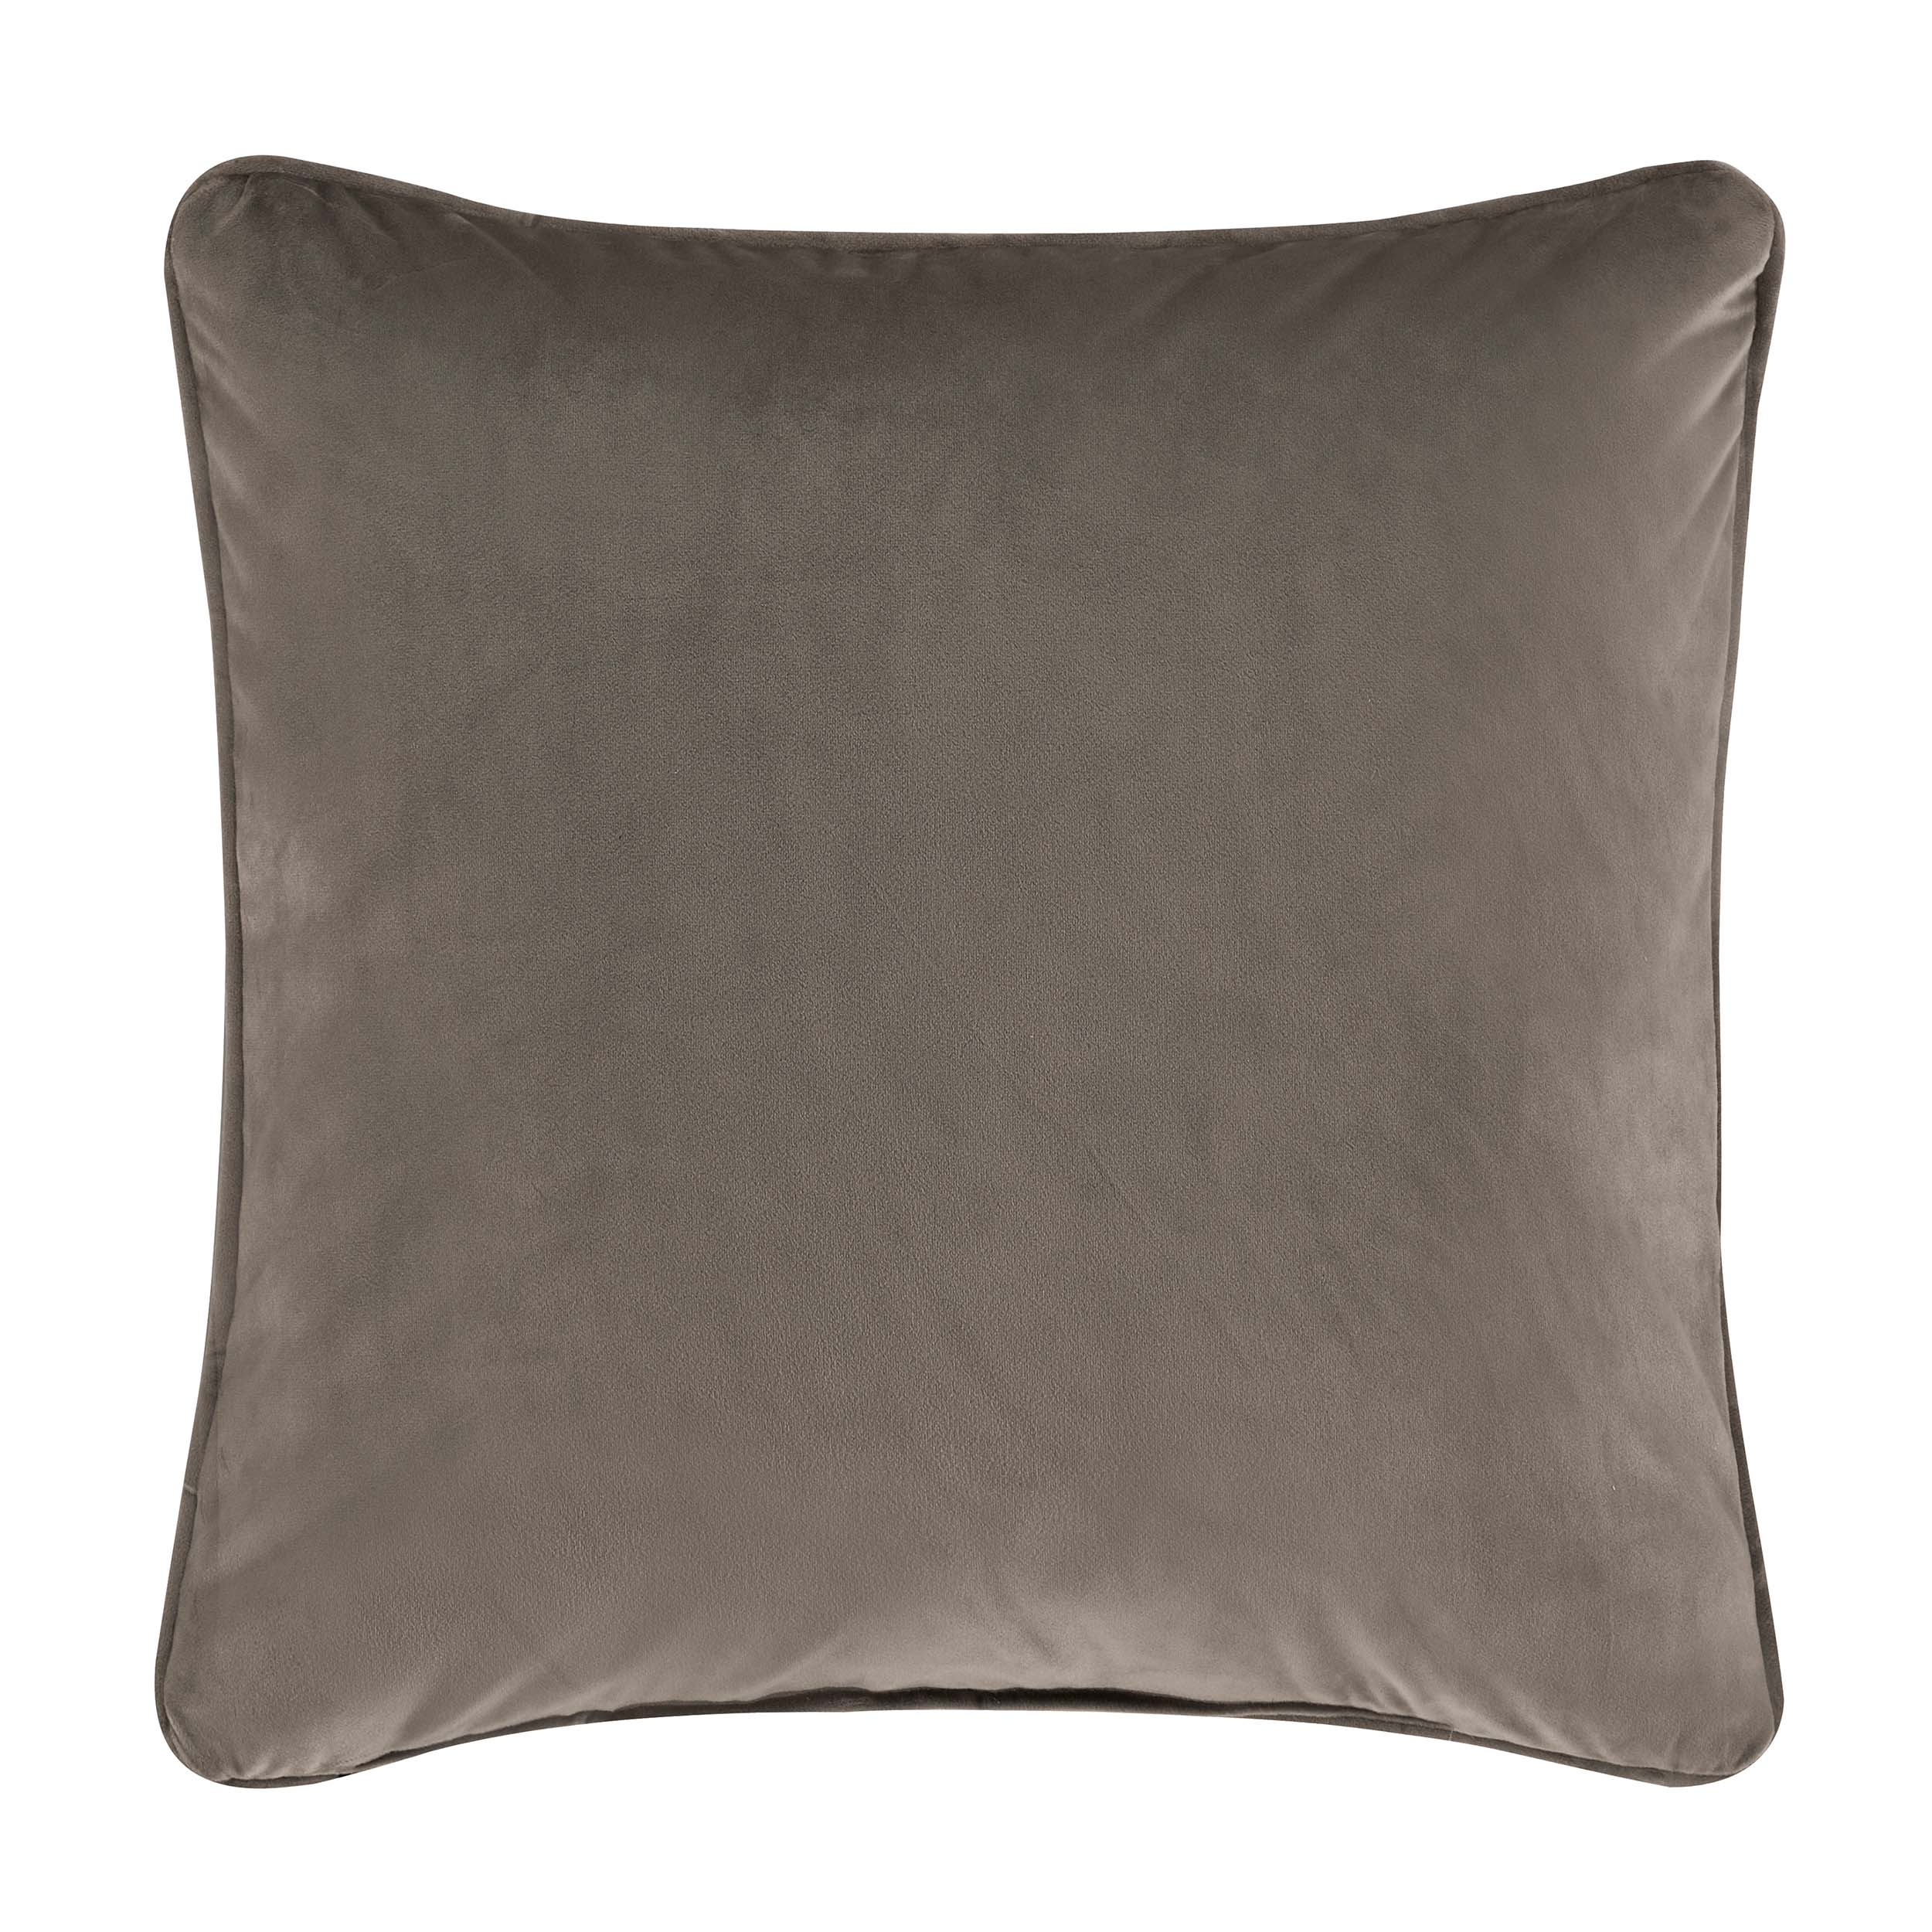 "Milan Oatmeal Decorative Throw Pillow 18"" x 18"" Throw Pillows By J. Queen New York"